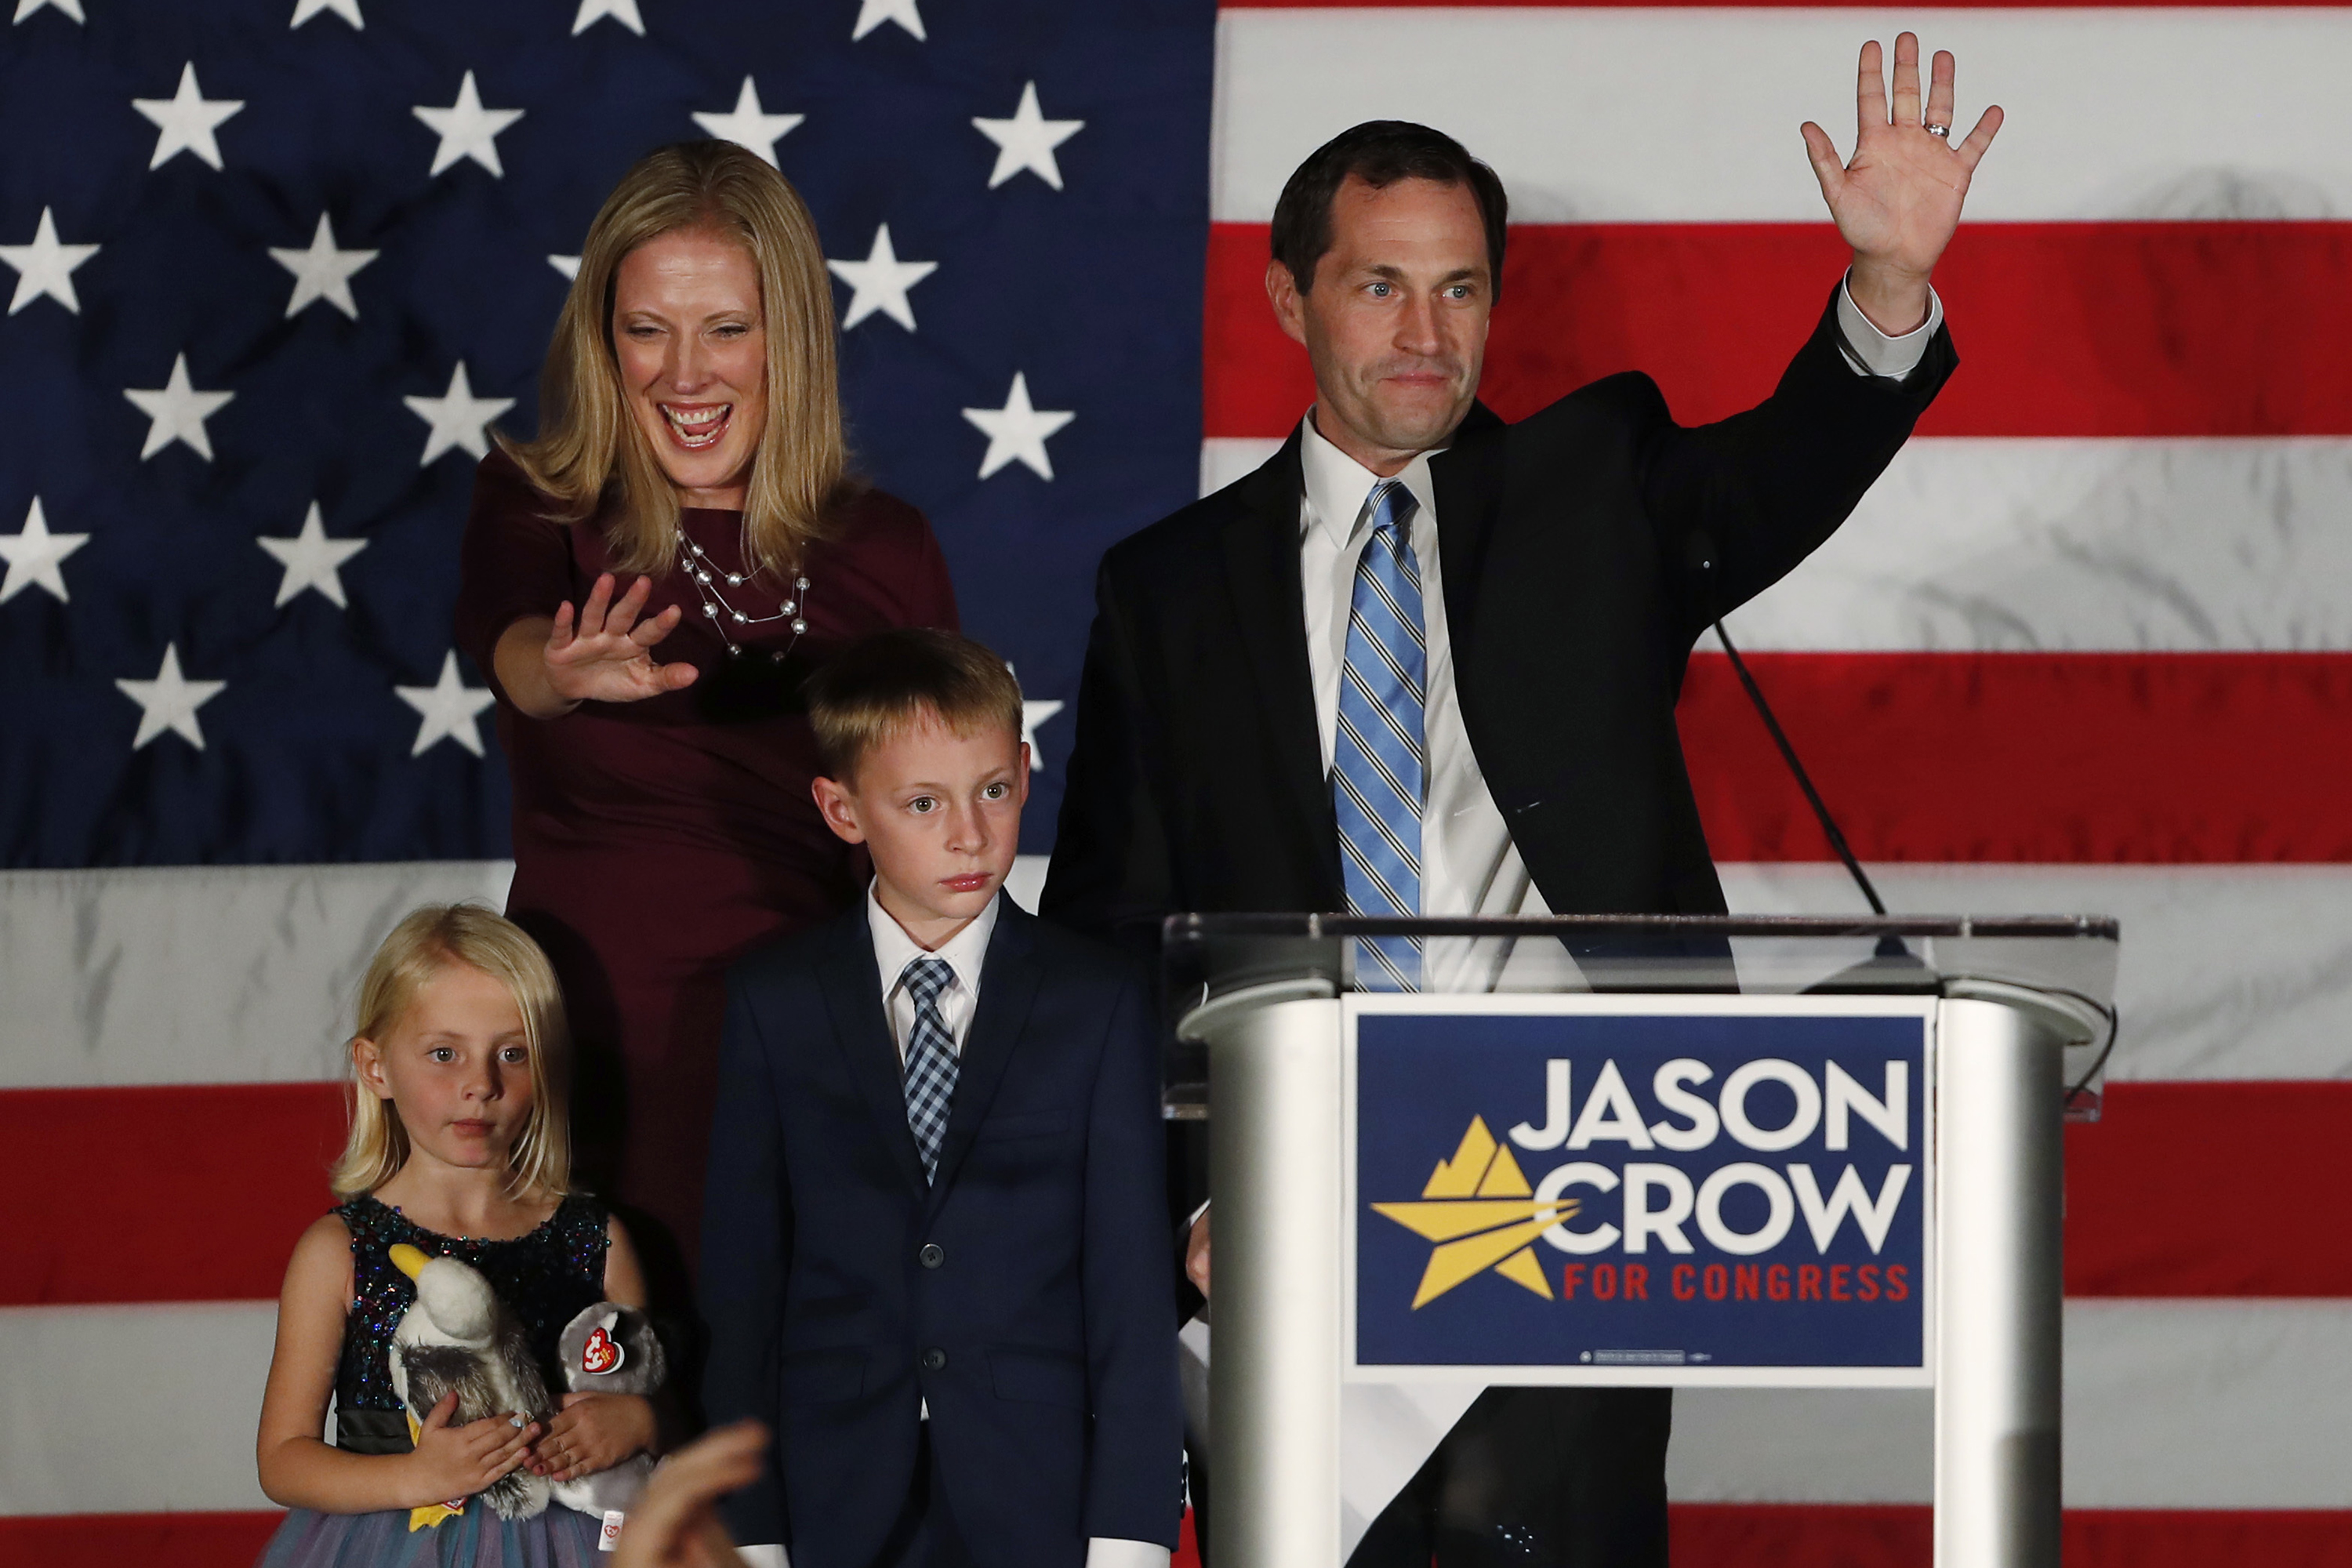 <p>Jason Crow, his wife Deserai, back left, and their 5-year-old daughter Josephine, front right, and 8-year-old son Anderson in greet supporters Tuesday, Nov. 6, 2018, during an election night watch party in Greenwood Village, Colo. Crow defeated Republican incumbent Mike Coffman to win 6th Congressional District seat.</p>